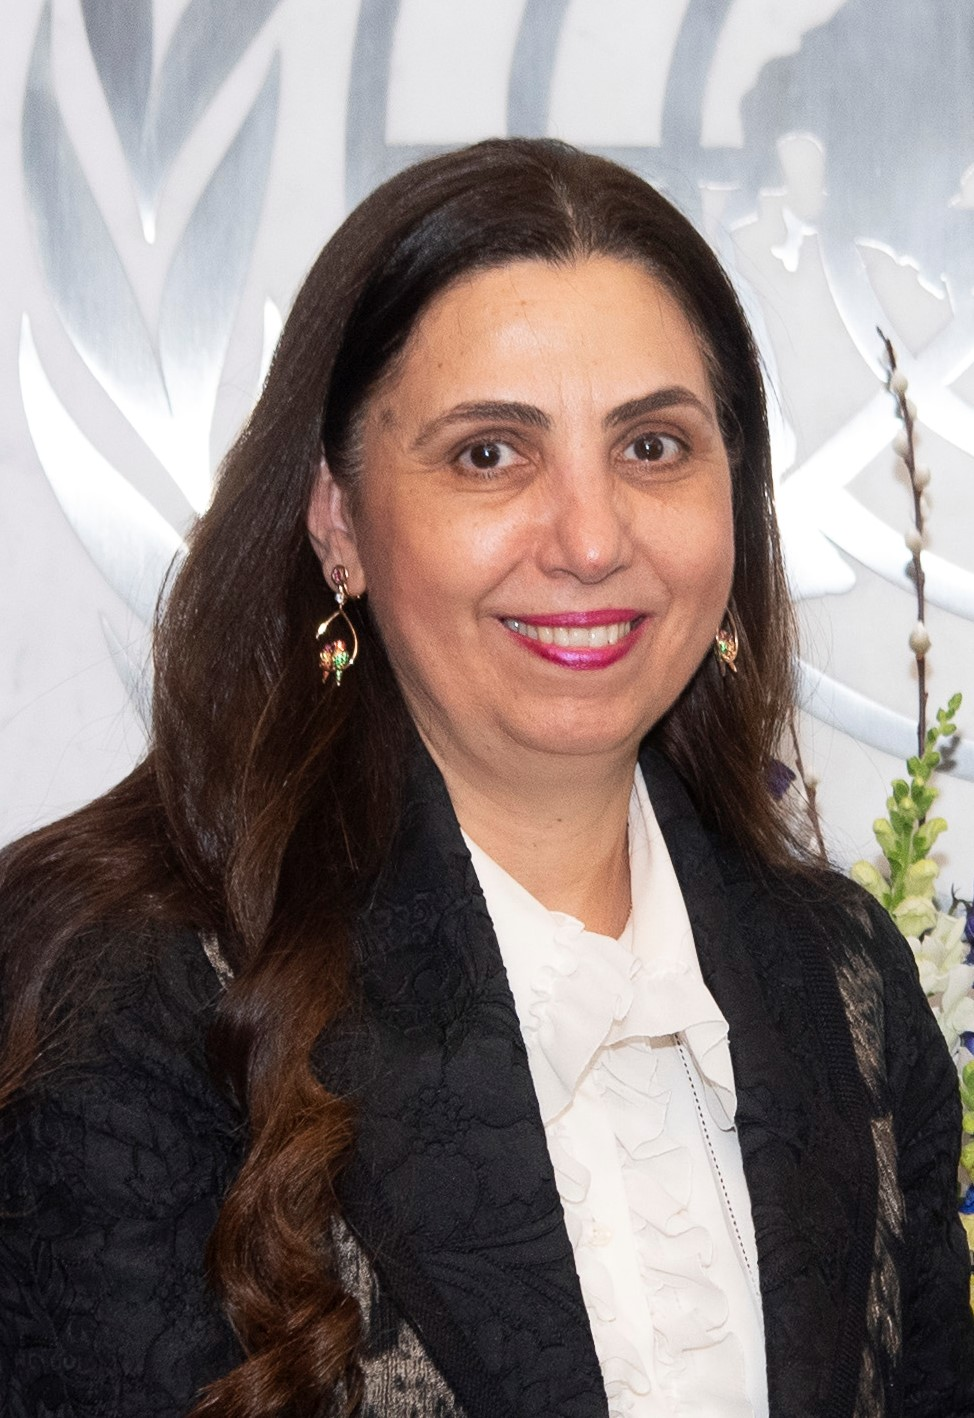 Rola A. A. H. Dashti Executive Secretary of the Economic and Social Commission for Western Asia